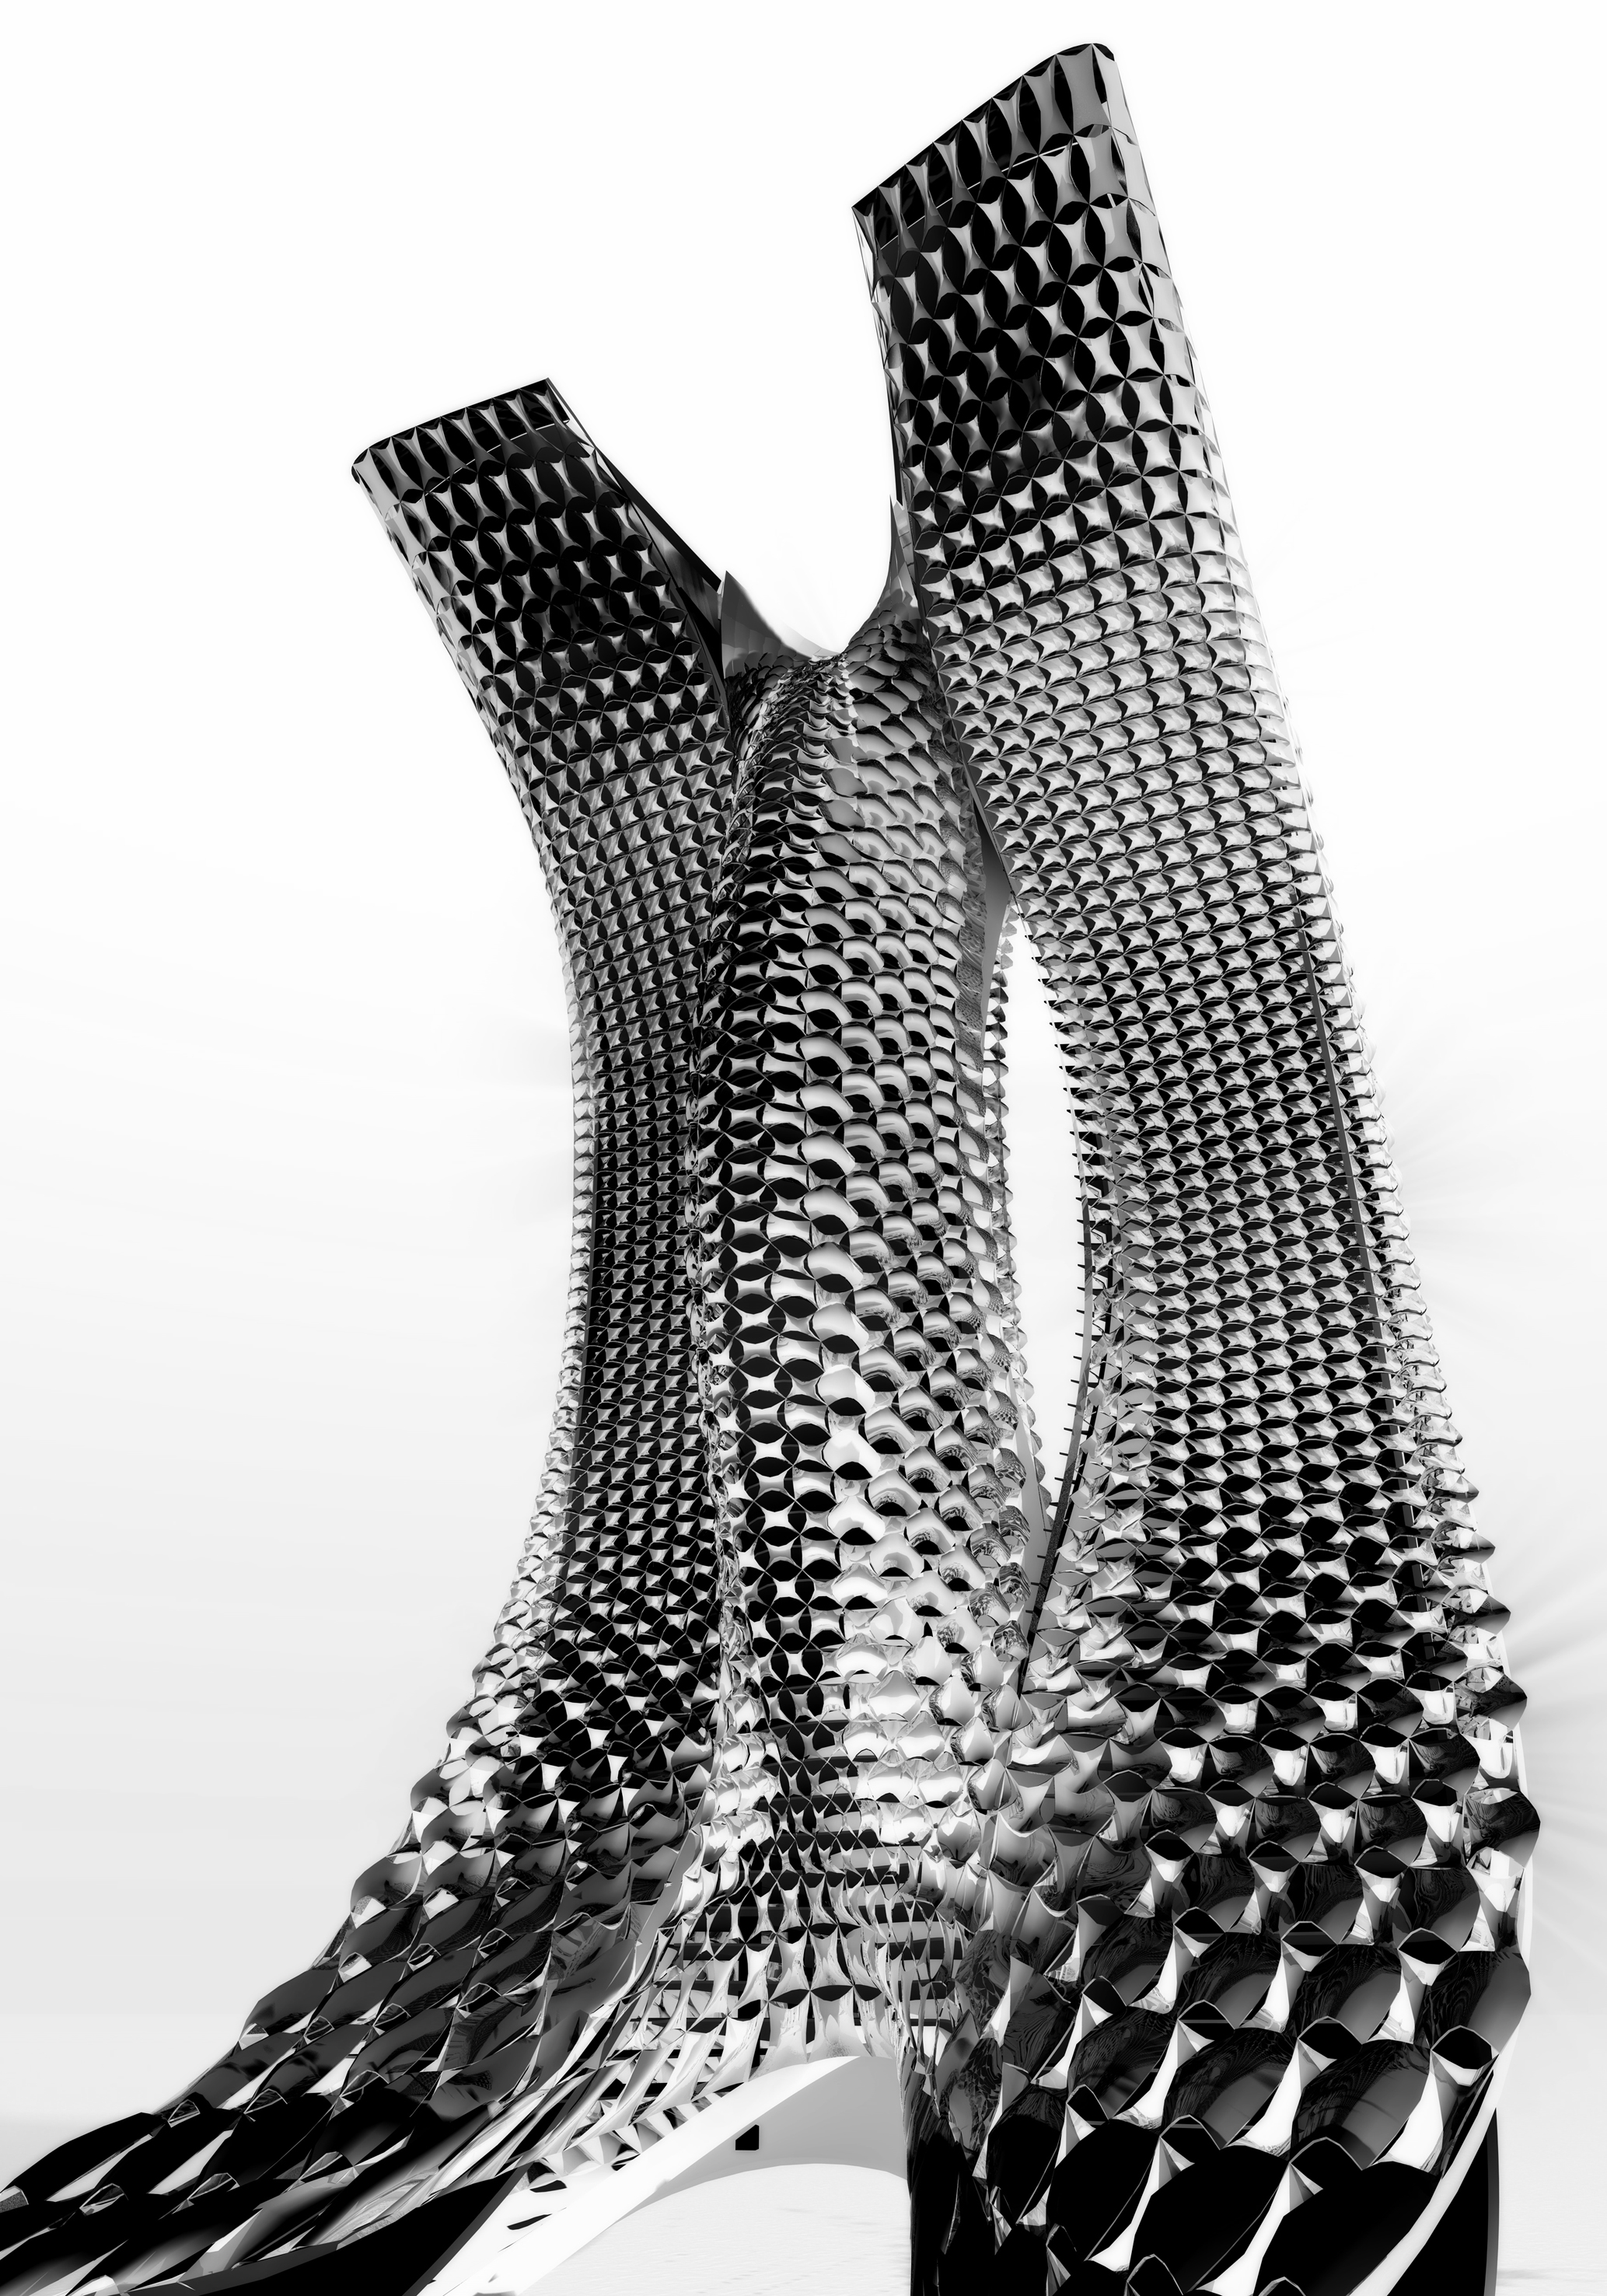 1000 images about parametricism on pinterest zaha hadid for Parametric architecture zaha hadid